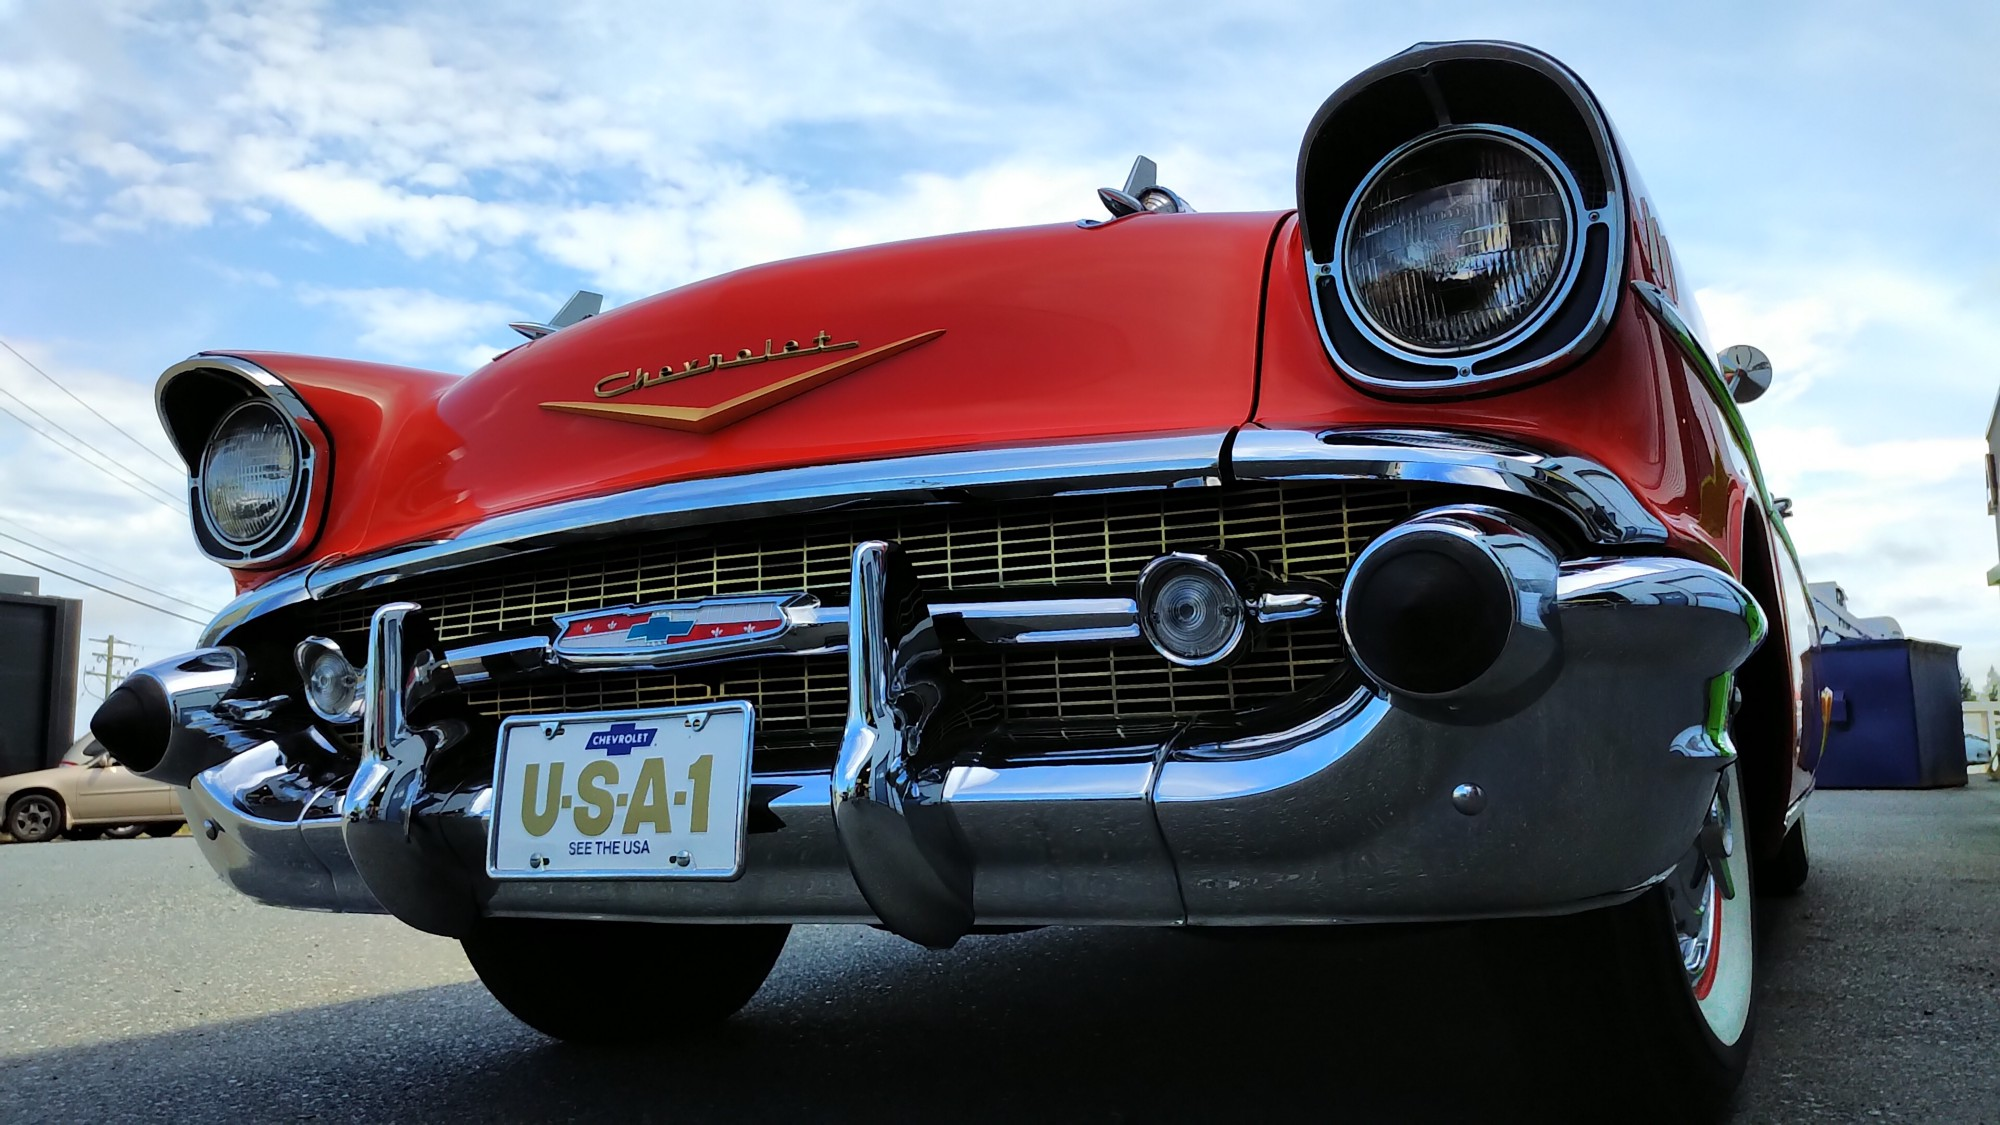 A 1957 Chevrolet Bel Air is considered and American Classic. Should it be converted to electric? www.canev.com